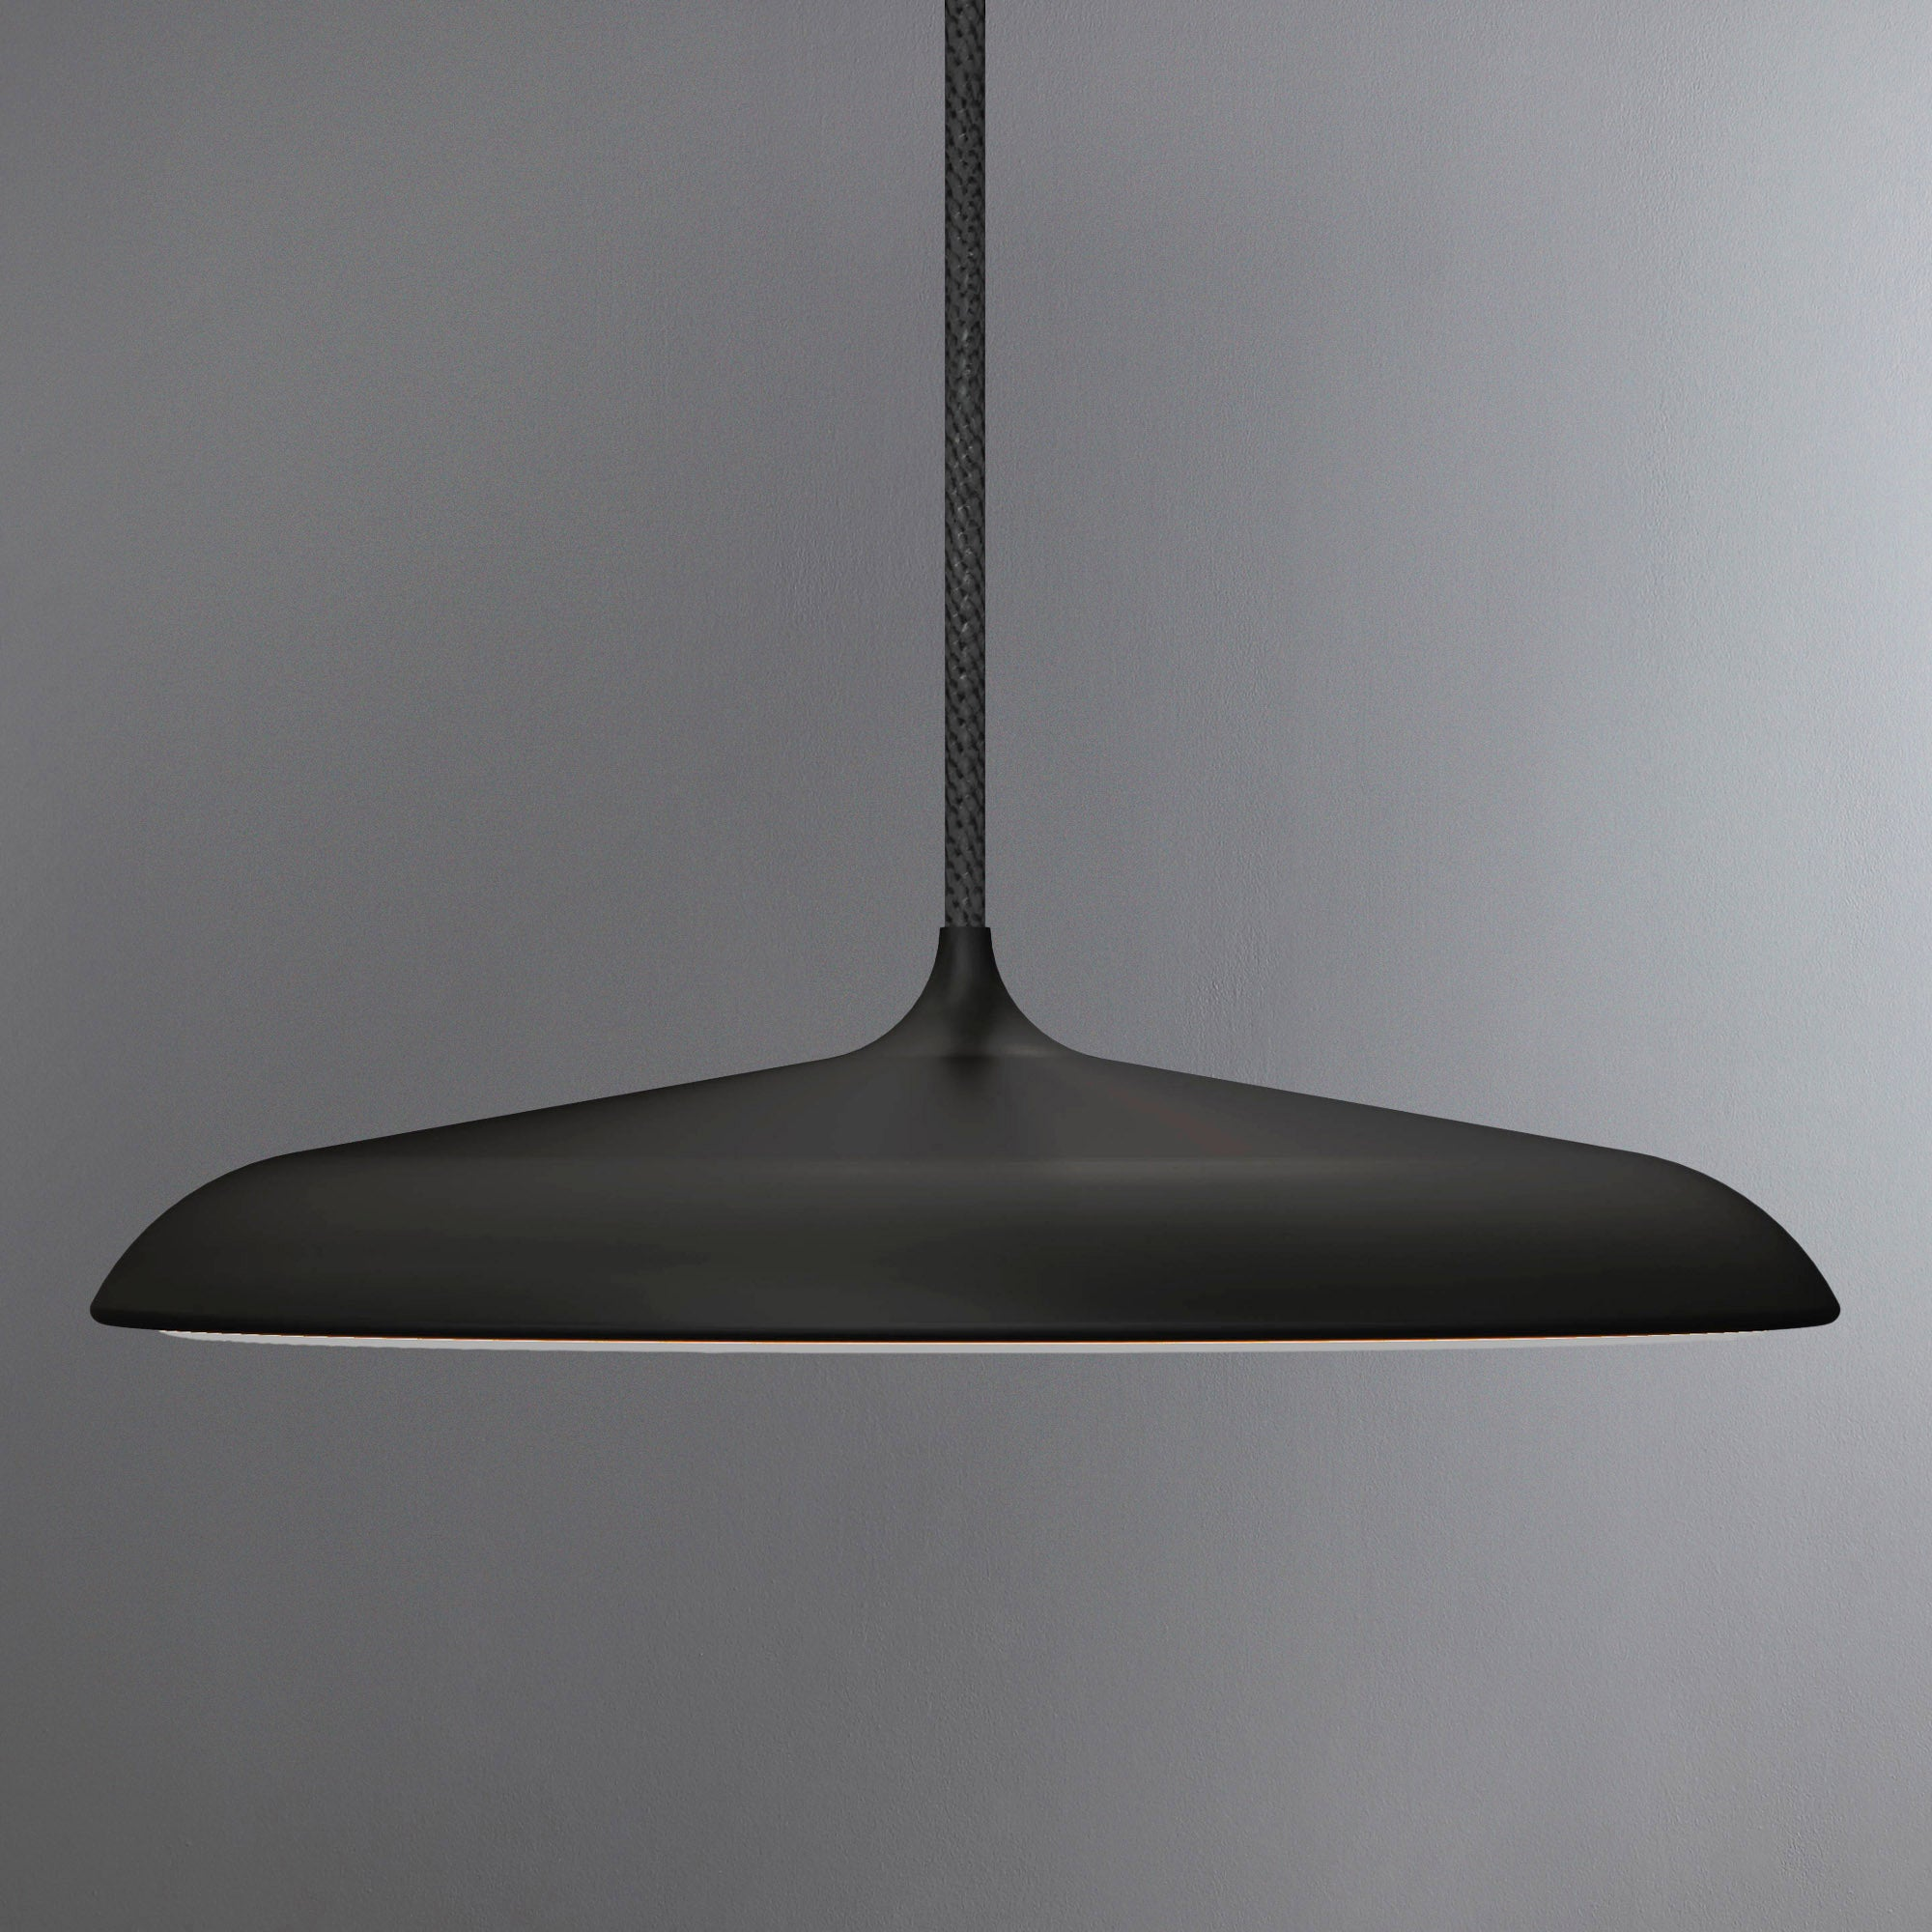 Image of Artist Small Black LED Pendant Light Fitting Black